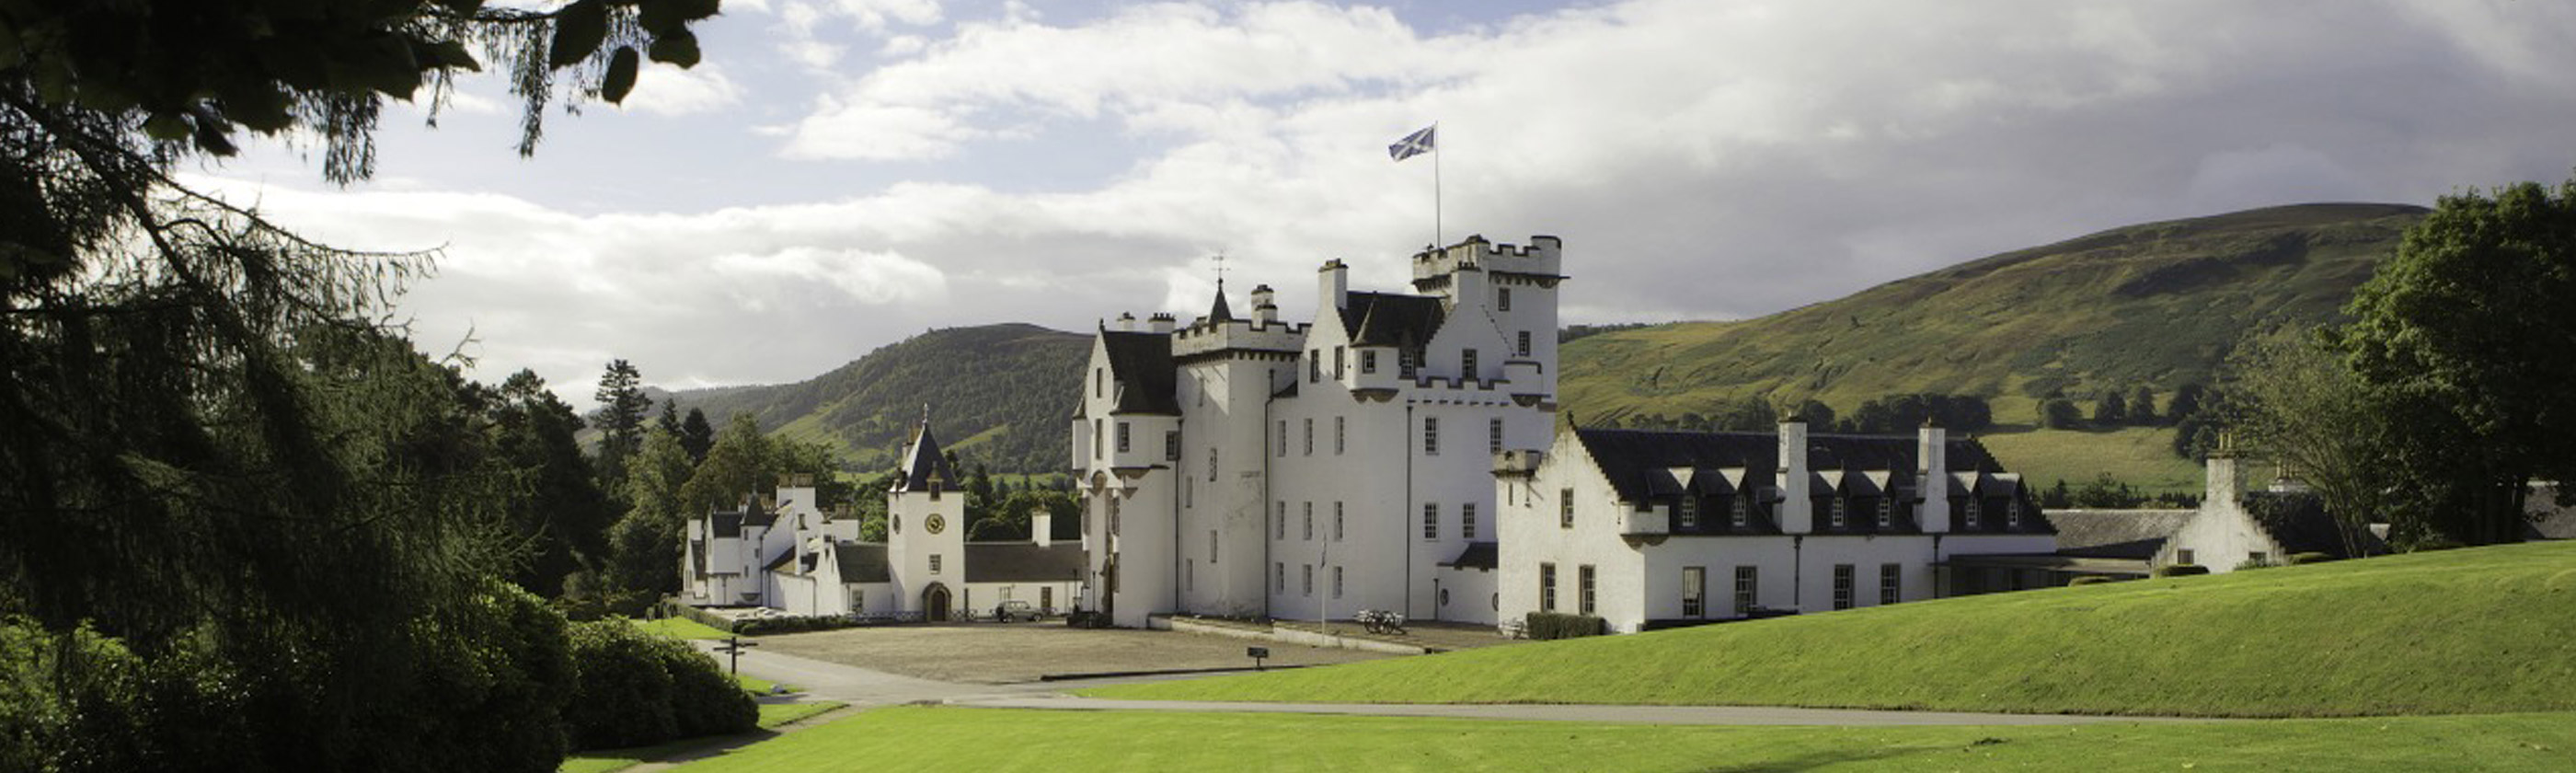 Photo of the exterior of Blair Castle in Highland Perthshire